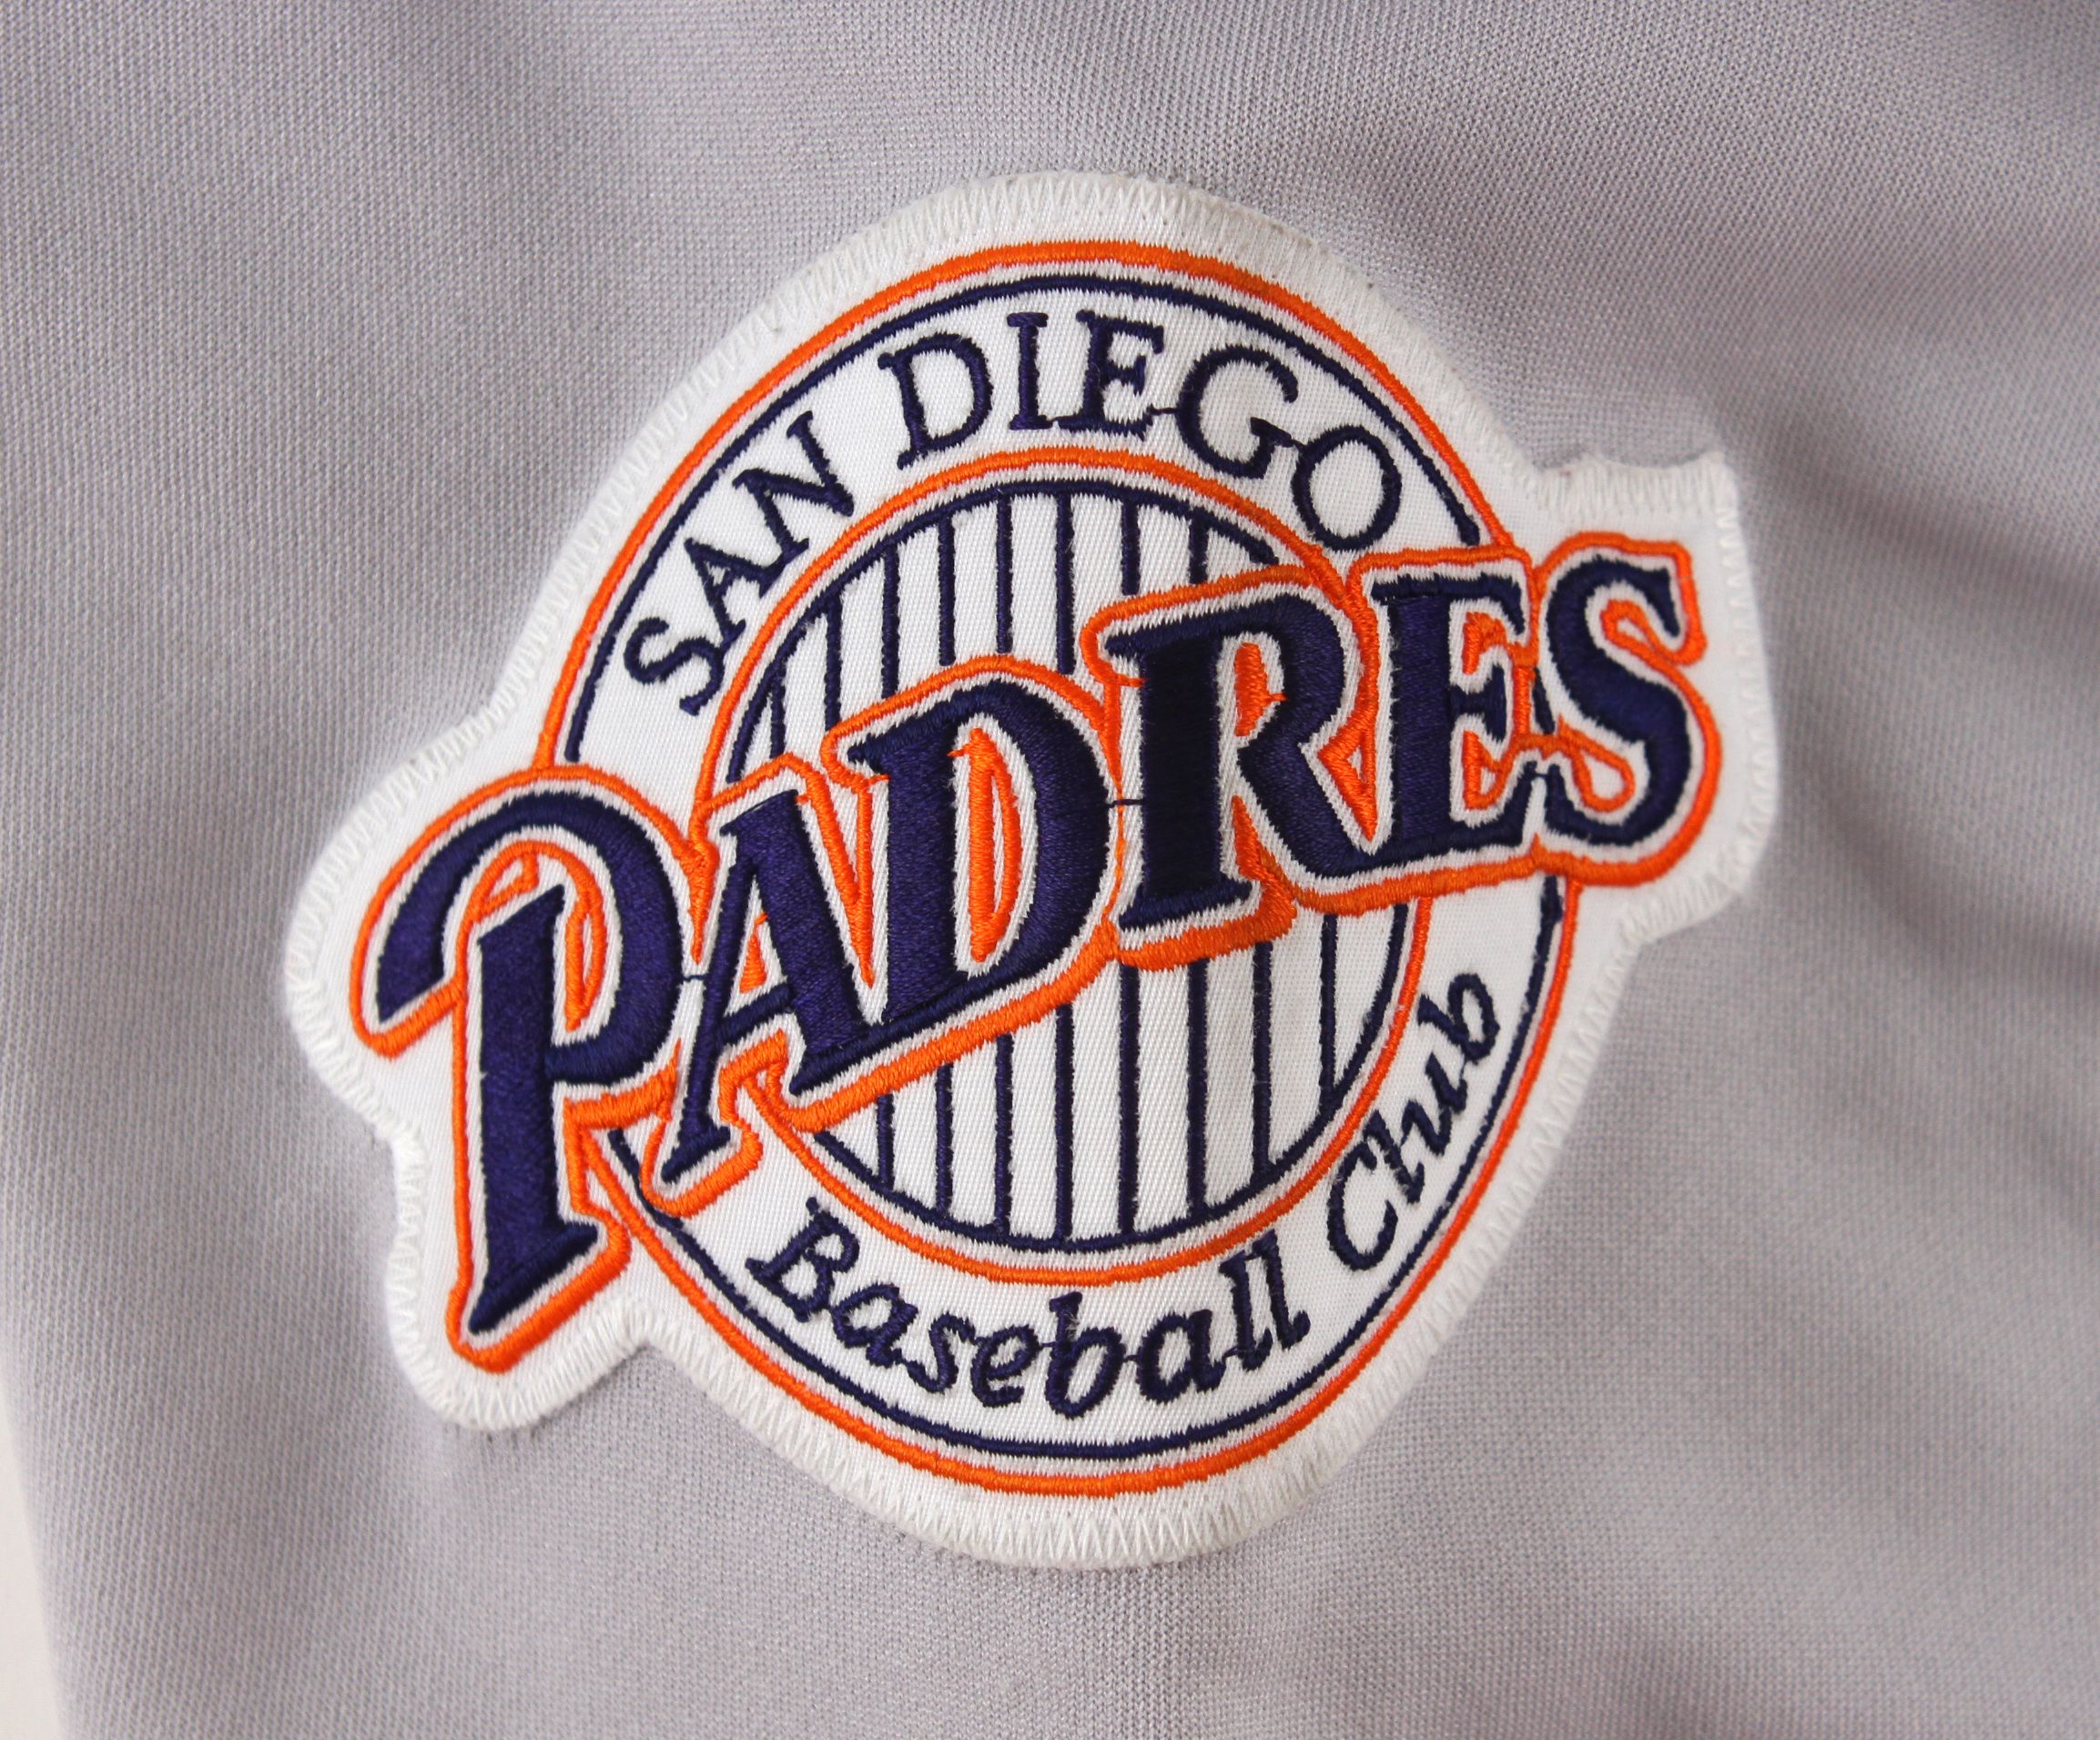 SAN DIEGO PADRES mlb baseball 2 wallpaper background 2307x1912